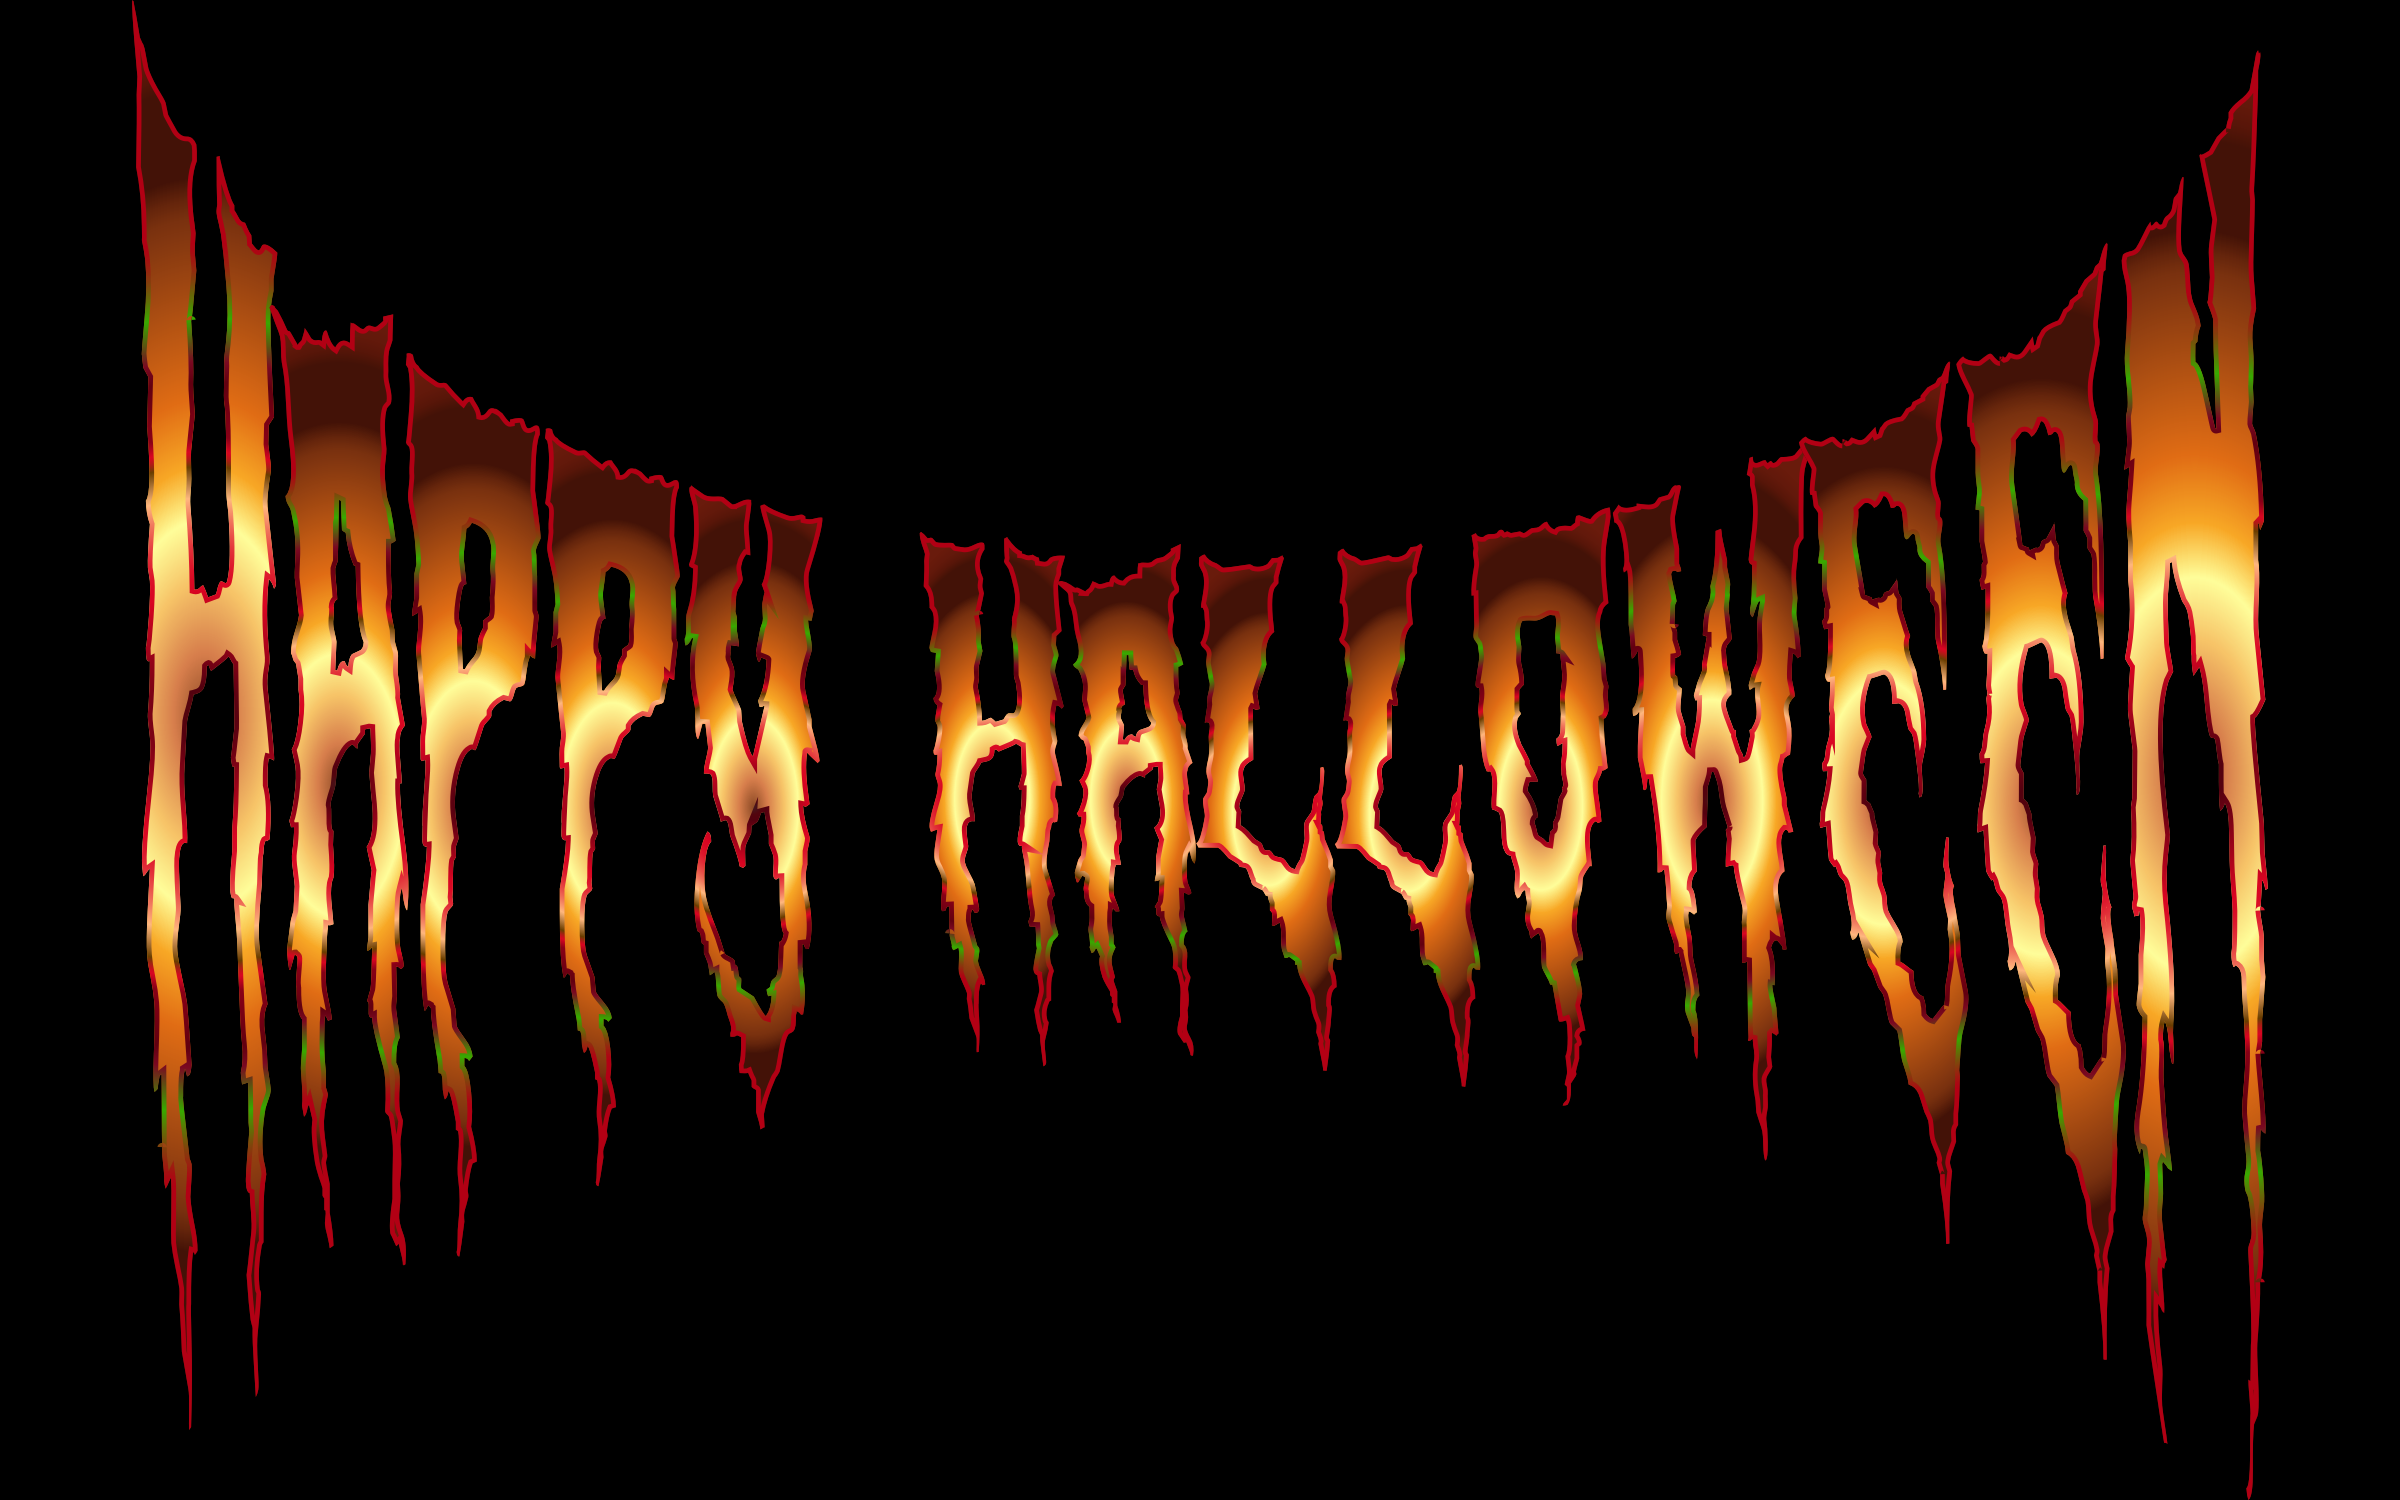 Happy Halloween Typography 5 by GDJ